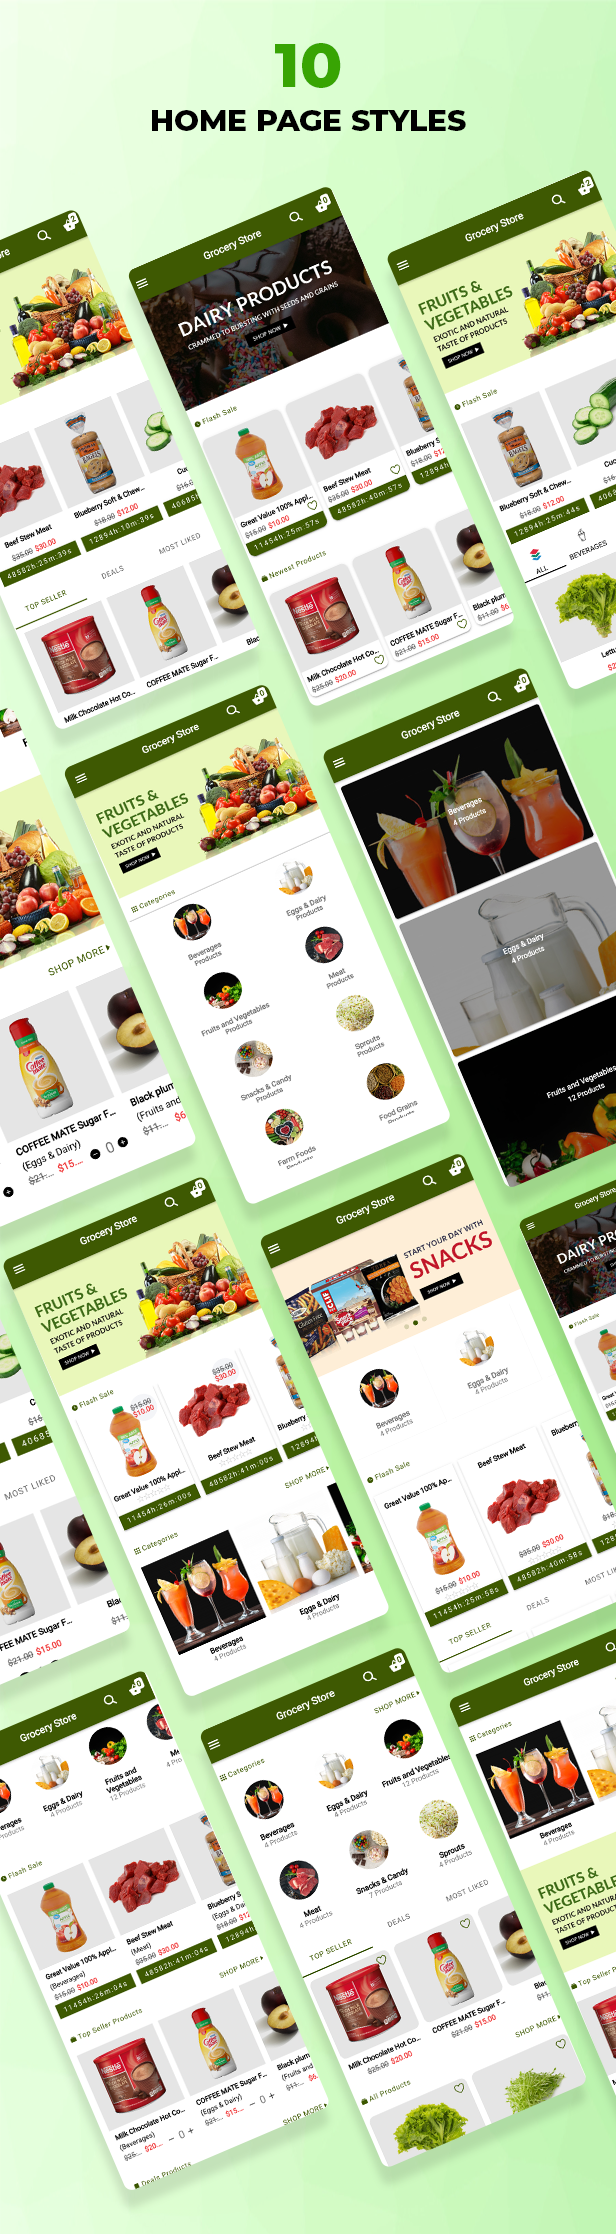 Ecommerce Solution with Delivery App For Grocery, Food, Pharmacy, Any Store / Laravel + Android Apps - 39